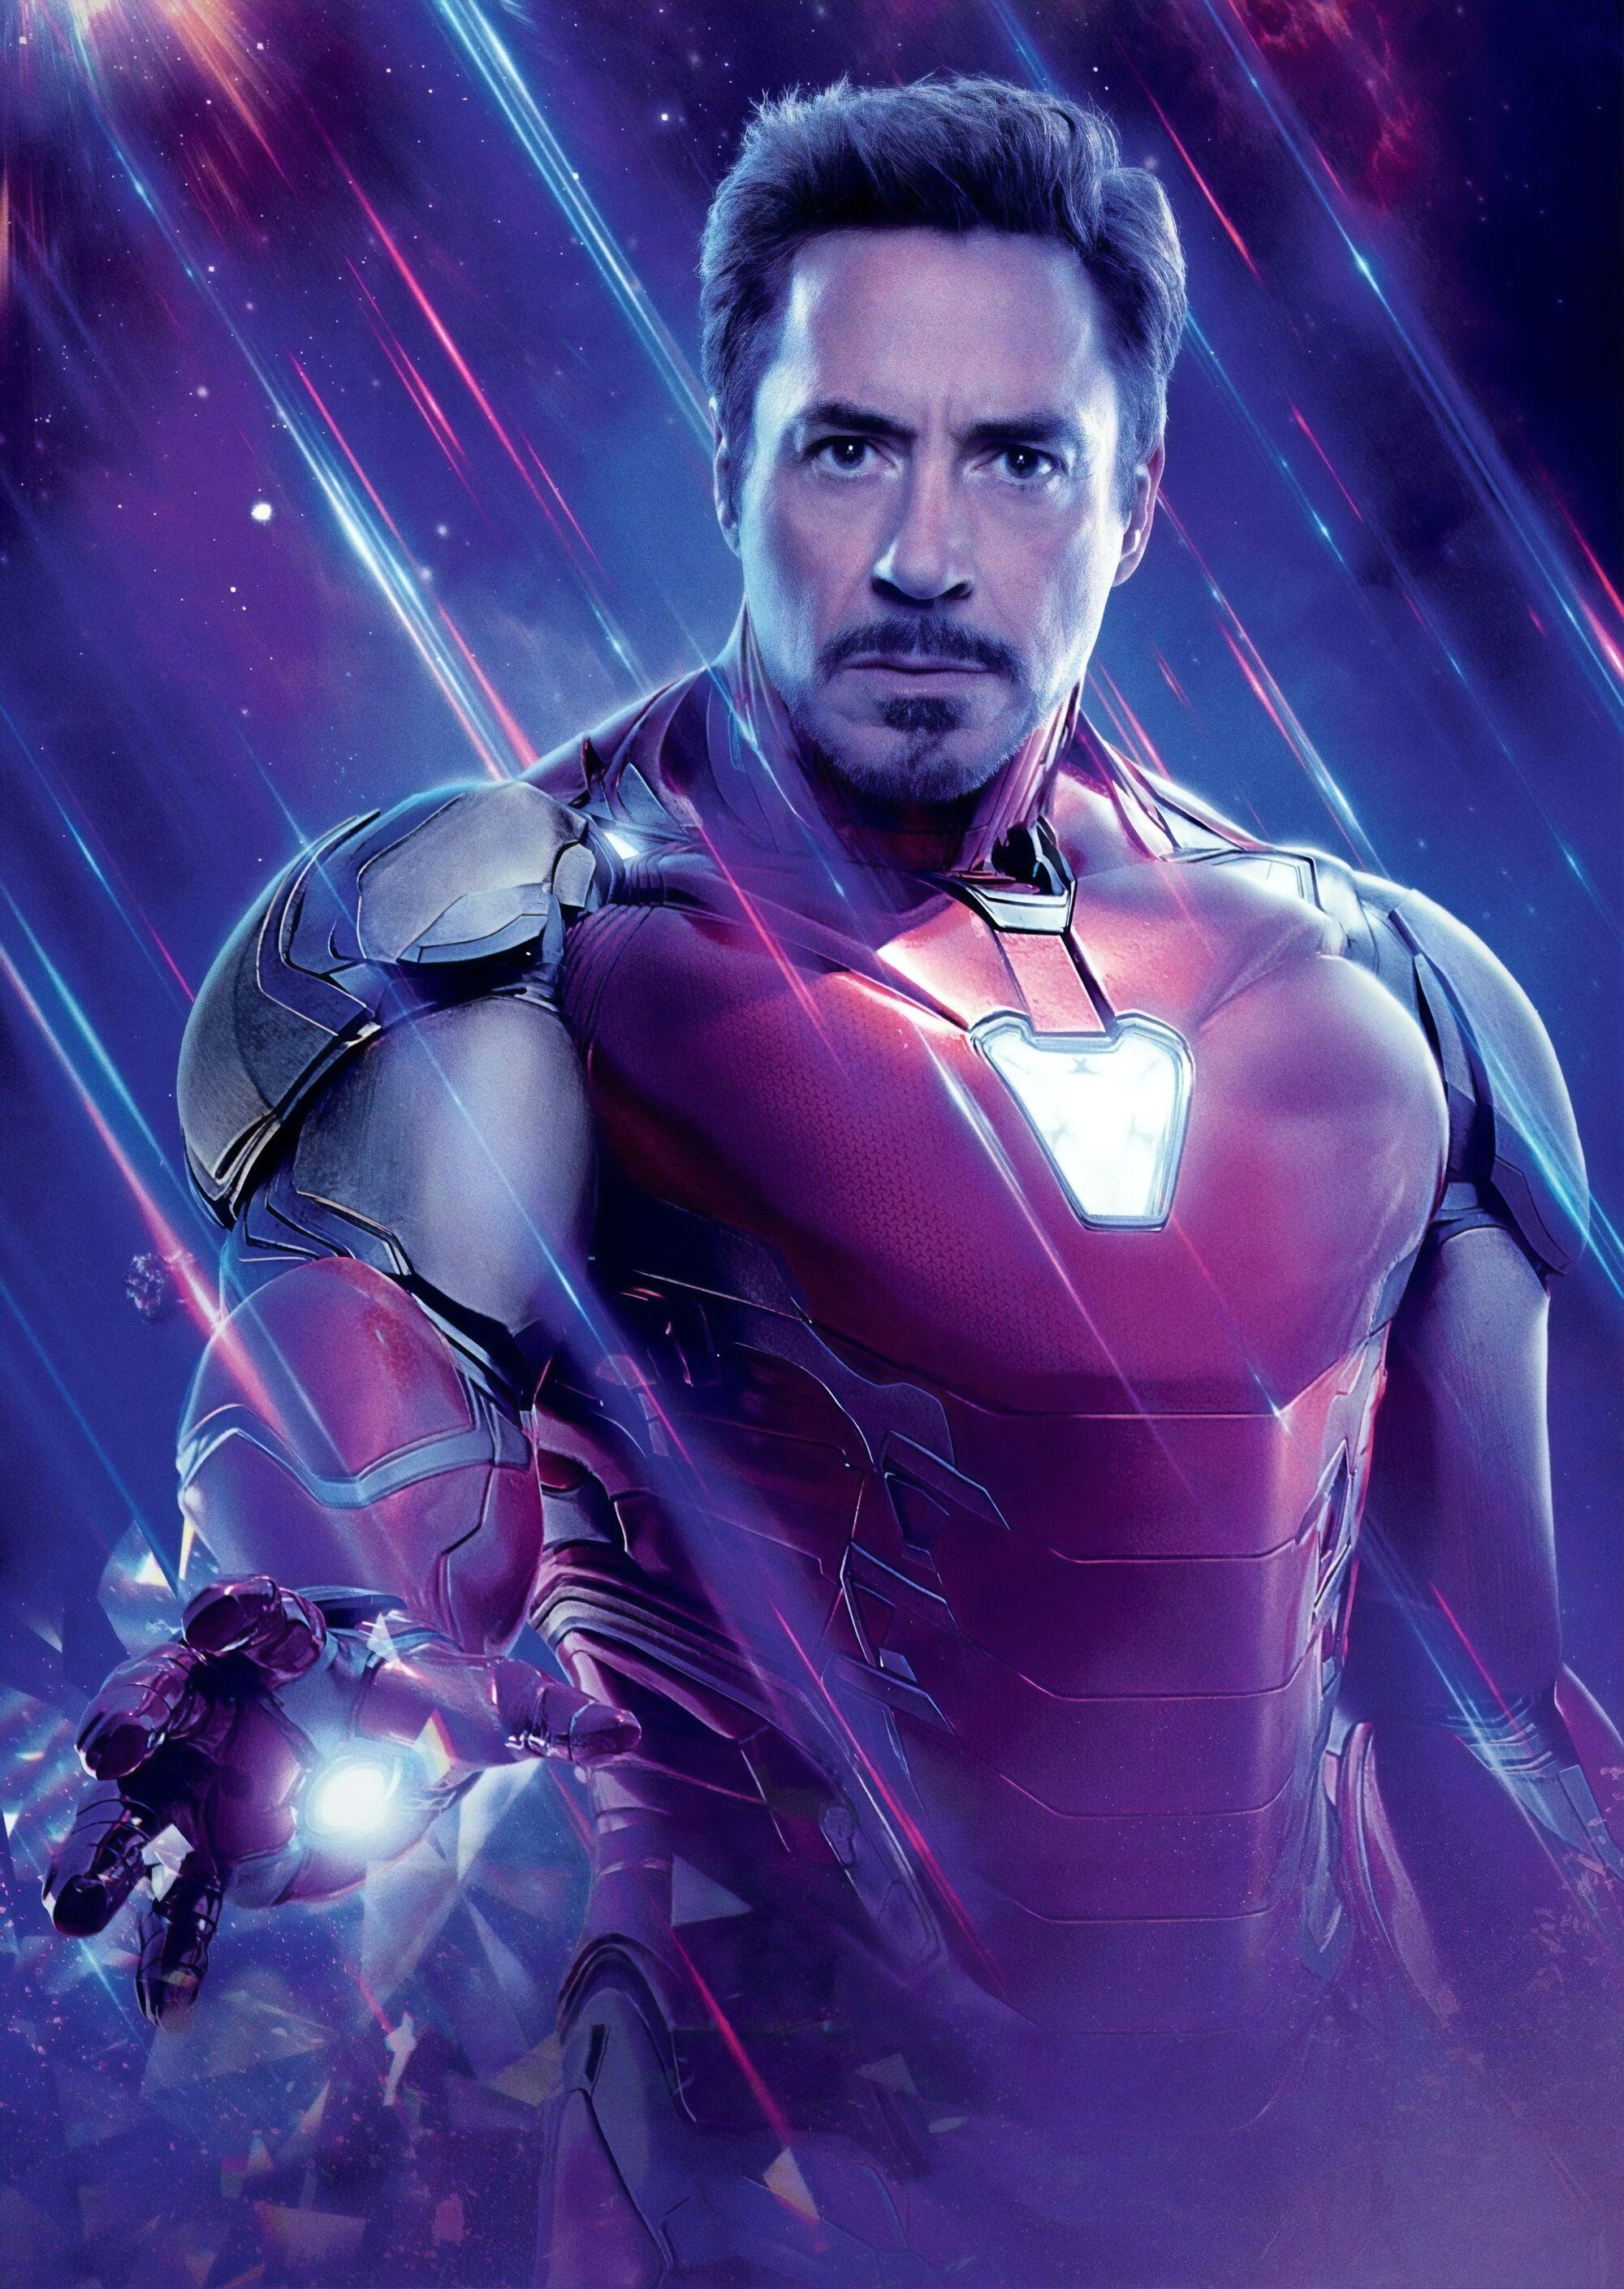 400605b0737 Iron Man | Marvel Cinematic Universe Wiki | FANDOM powered by Wikia